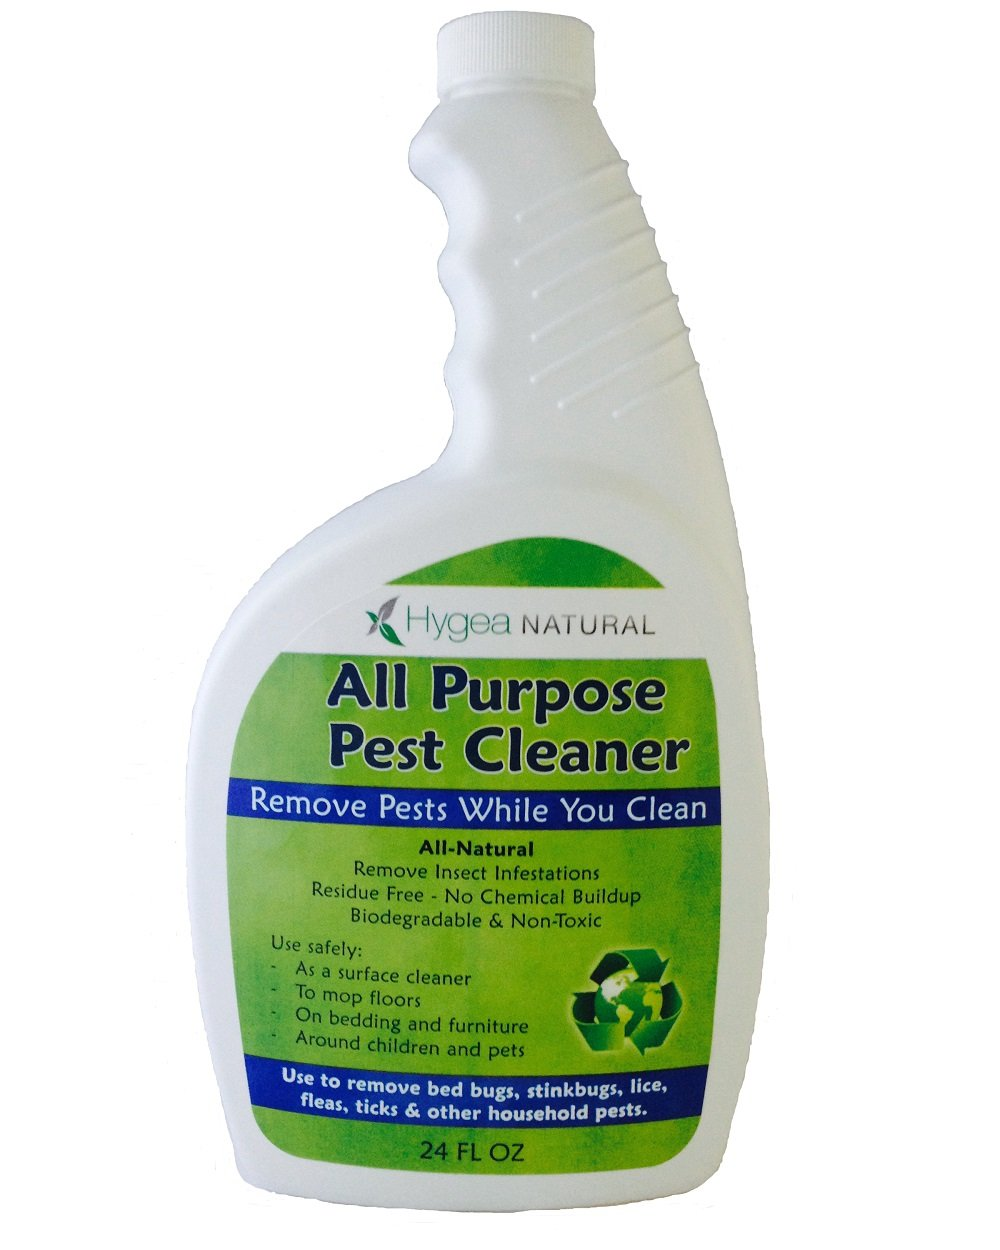 Bed Bug 911 Hygea Natural | All Purpose Pest Cleaner |24 oz Spray